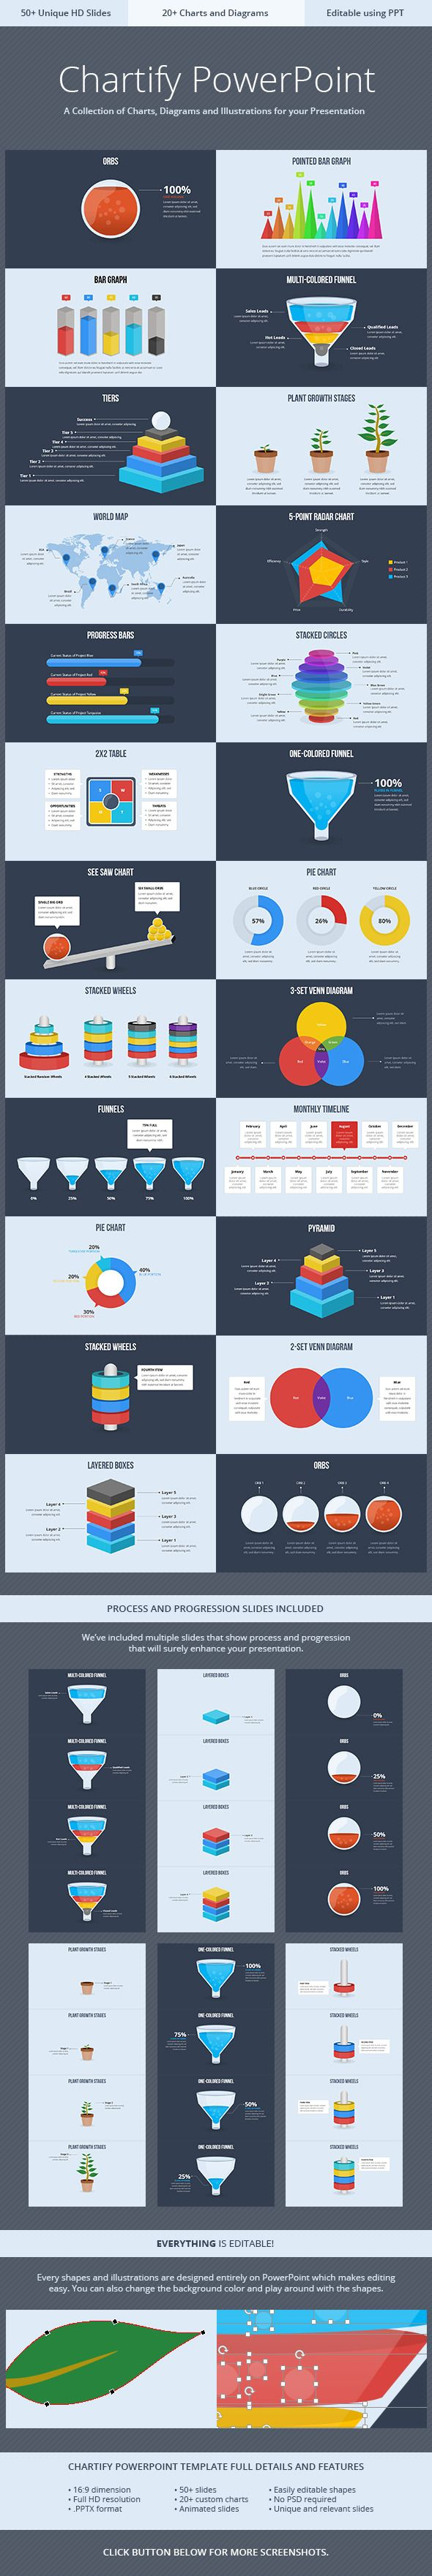 Chartify PowerPoint Template - Presentation Templates